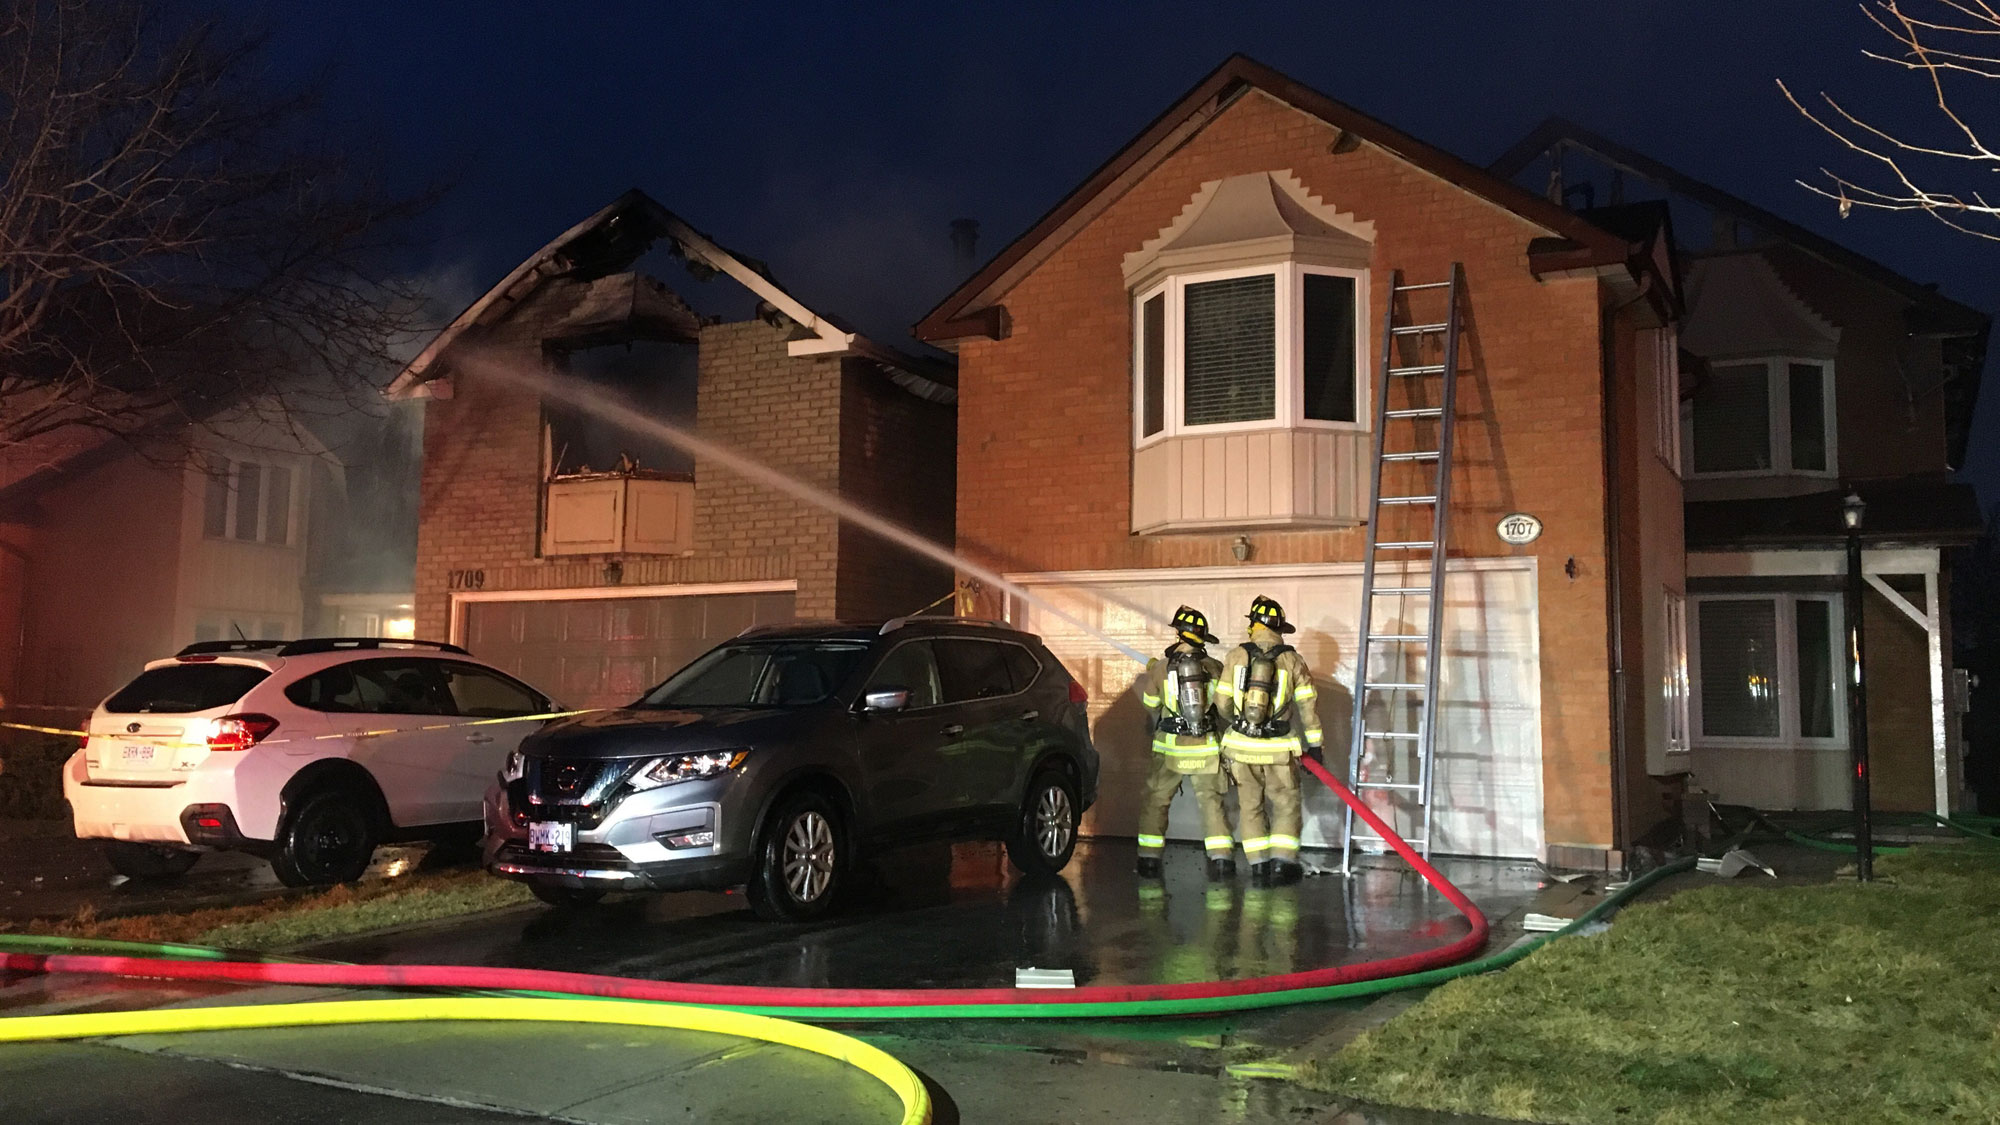 Firefighters battle a fire at a home on Echo Point Court in Pickering on March 28, 2018. CITYNEWS/Mehrdad Nazarahari